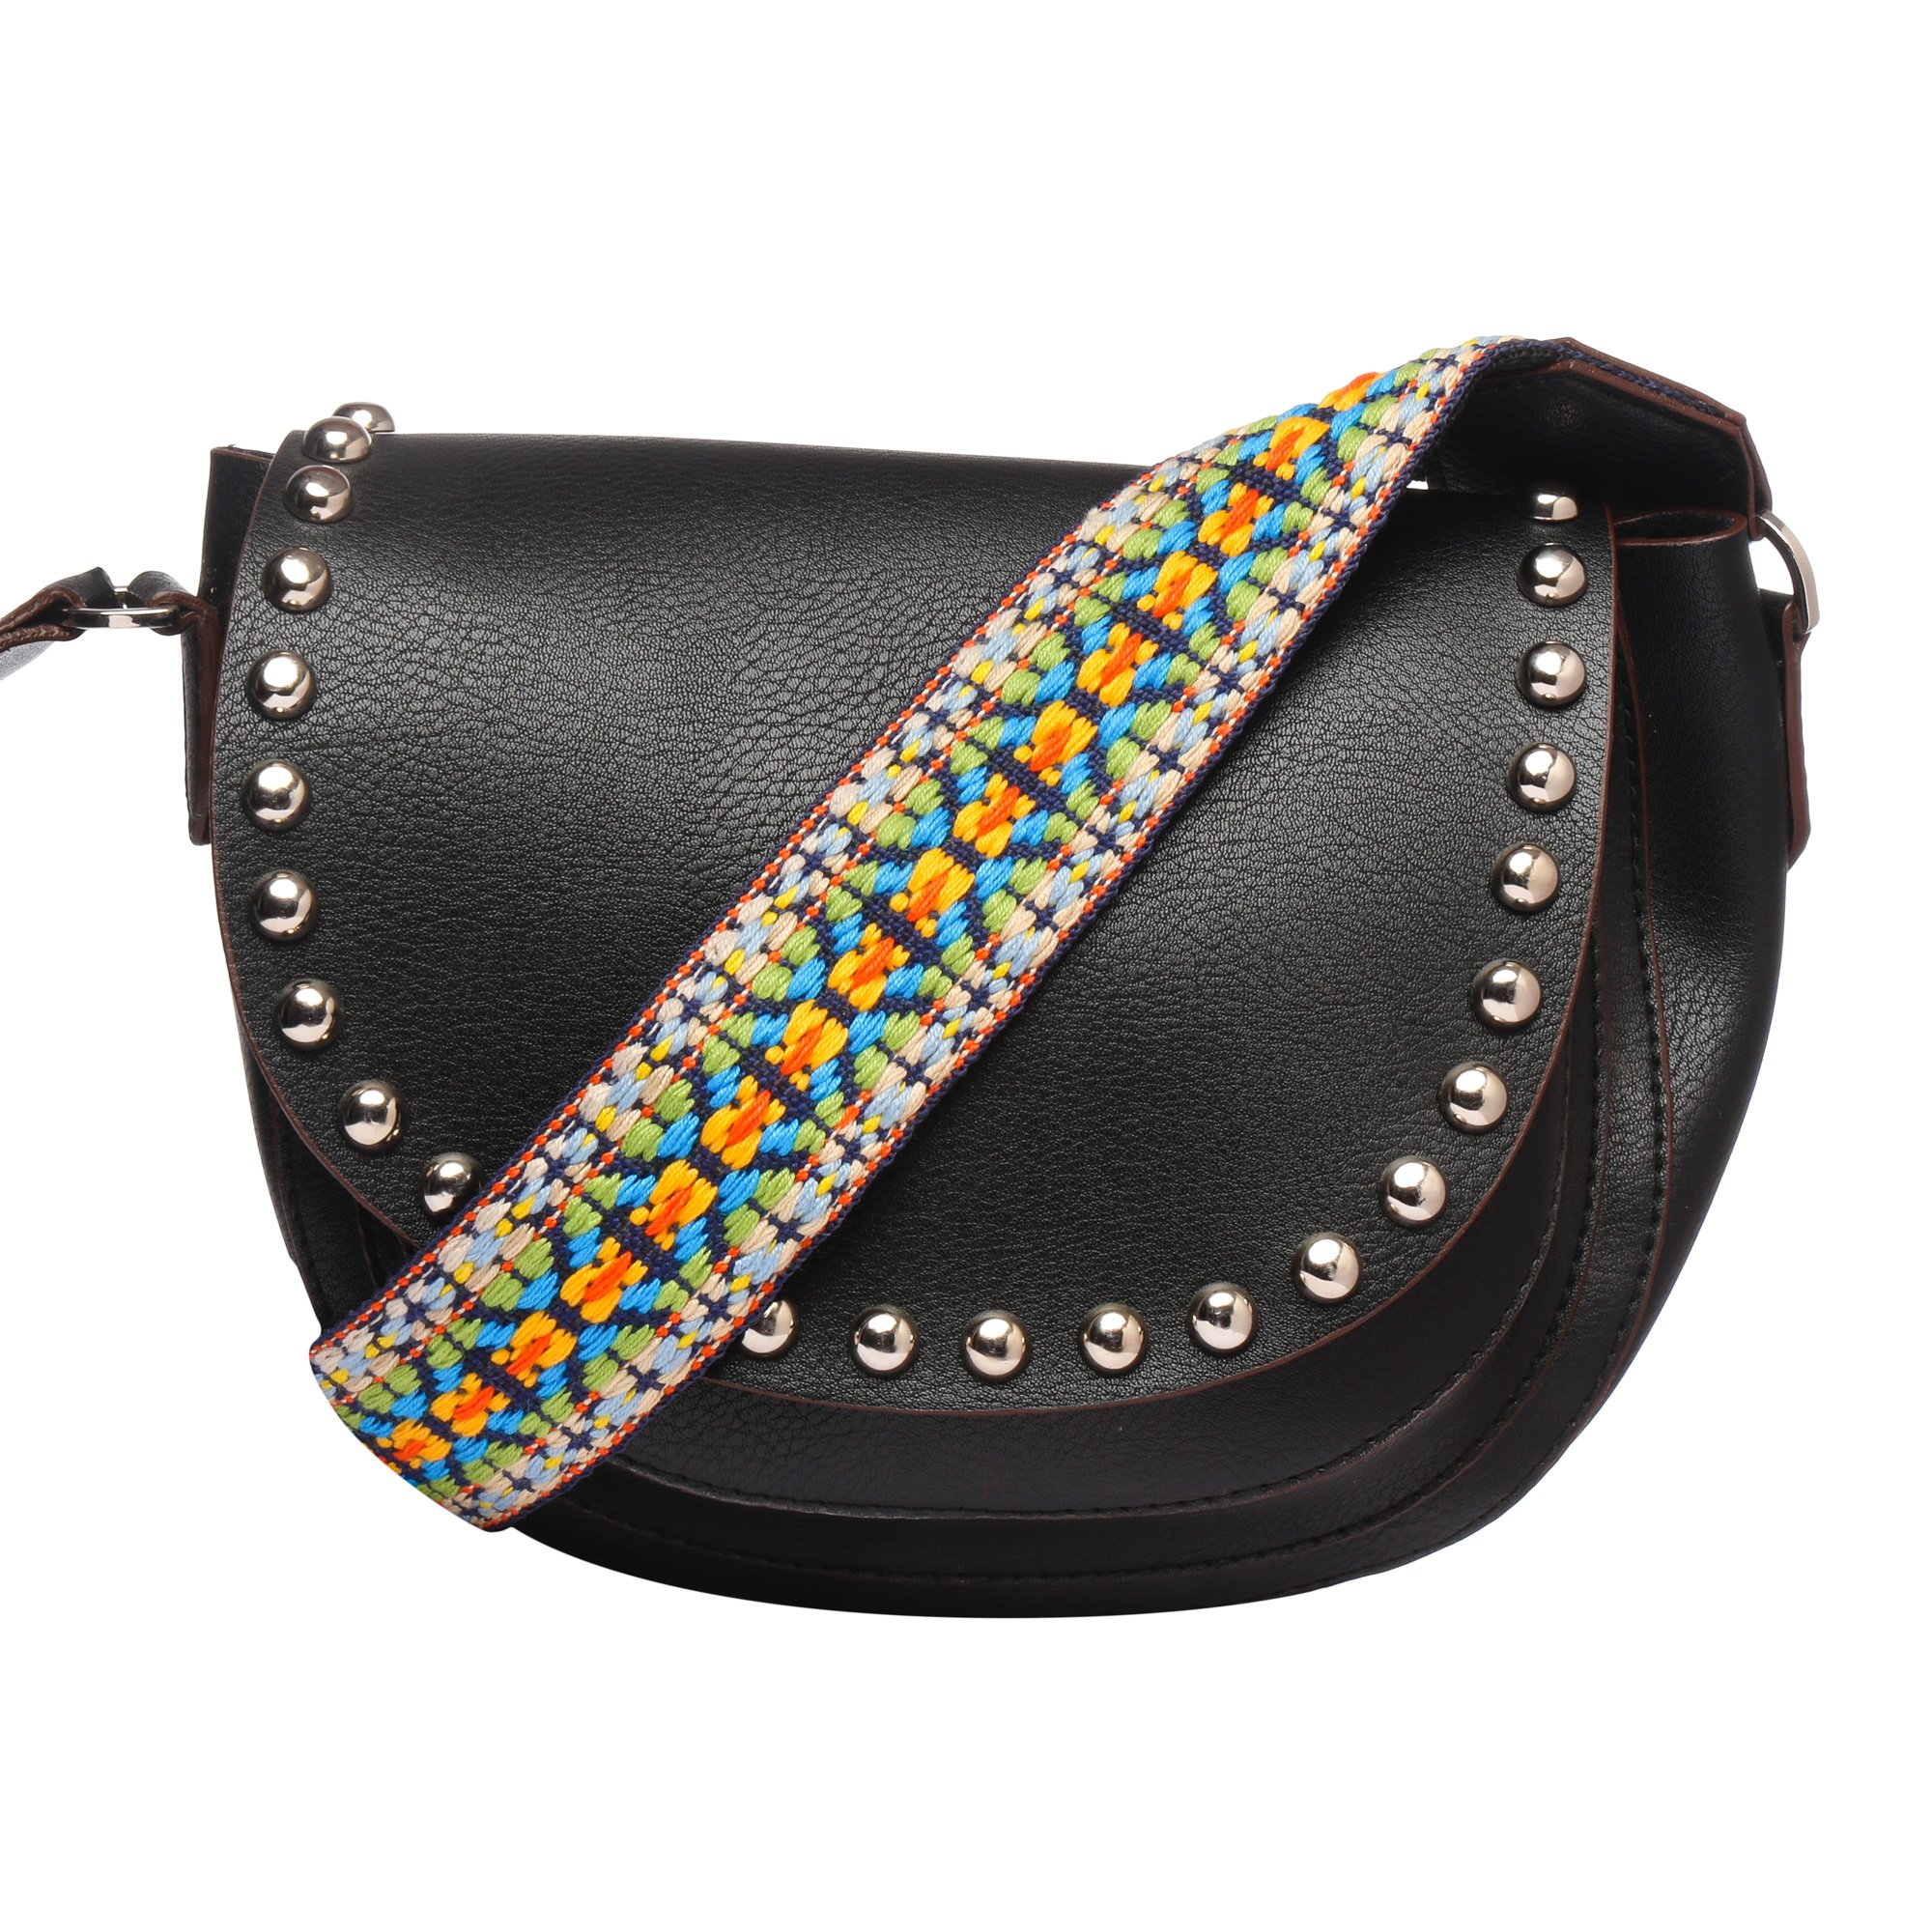 MONOKROME NEW YORK handbags for women studded crossbody sling saddle bag with rainbow color hand woven cotton cross body strap for women